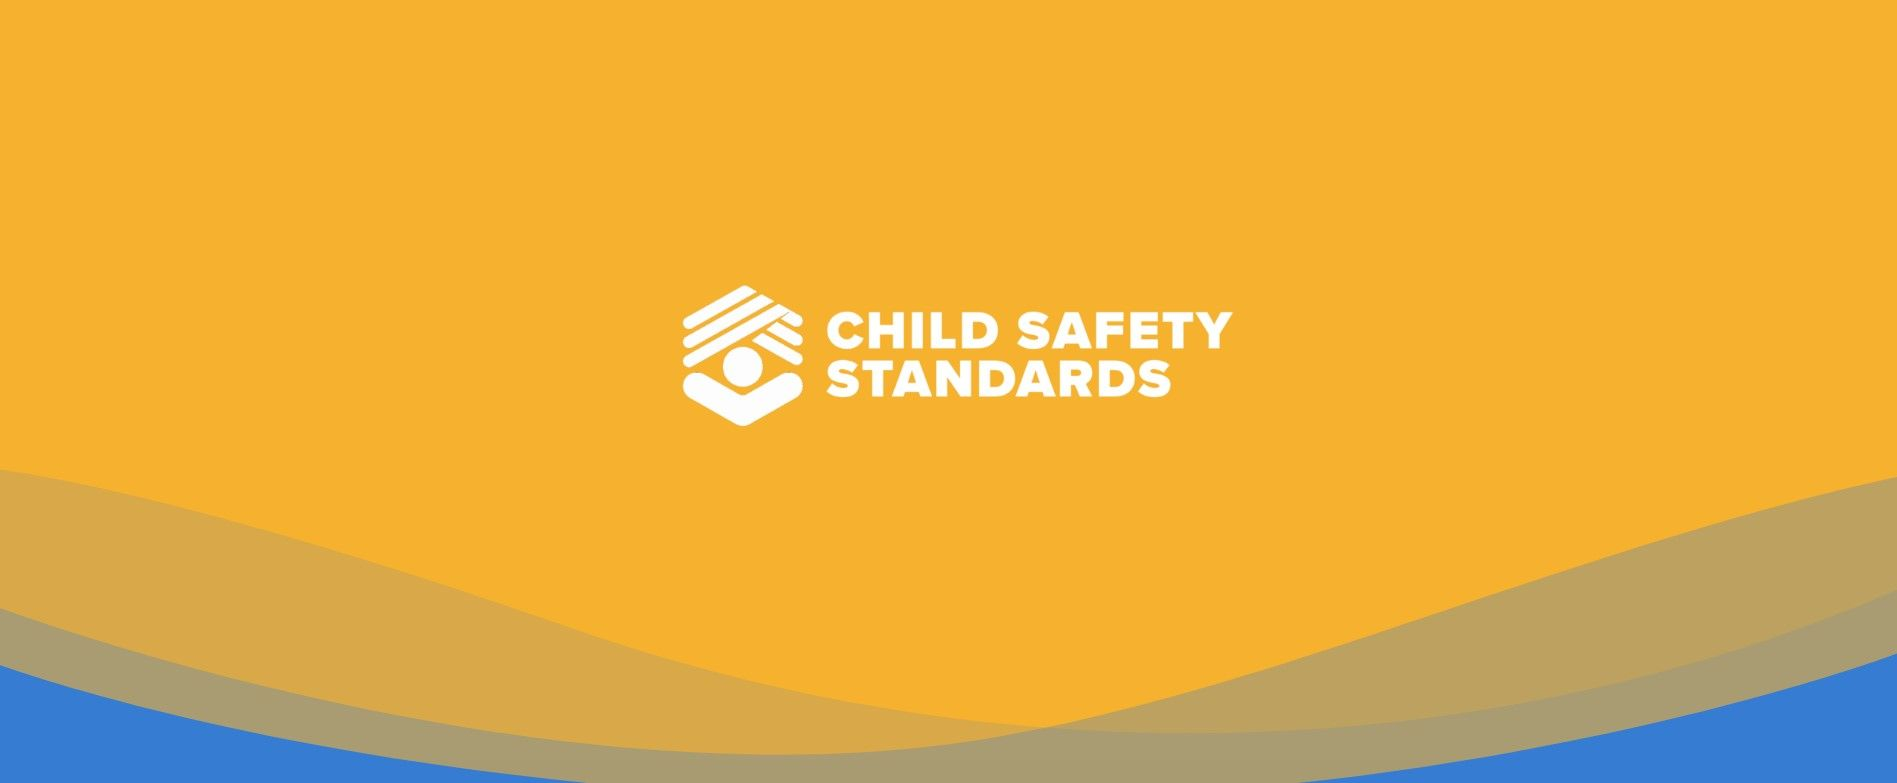 The child safety standards are offered to assist ministries of all kinds as they work to protect children in their care from abuse